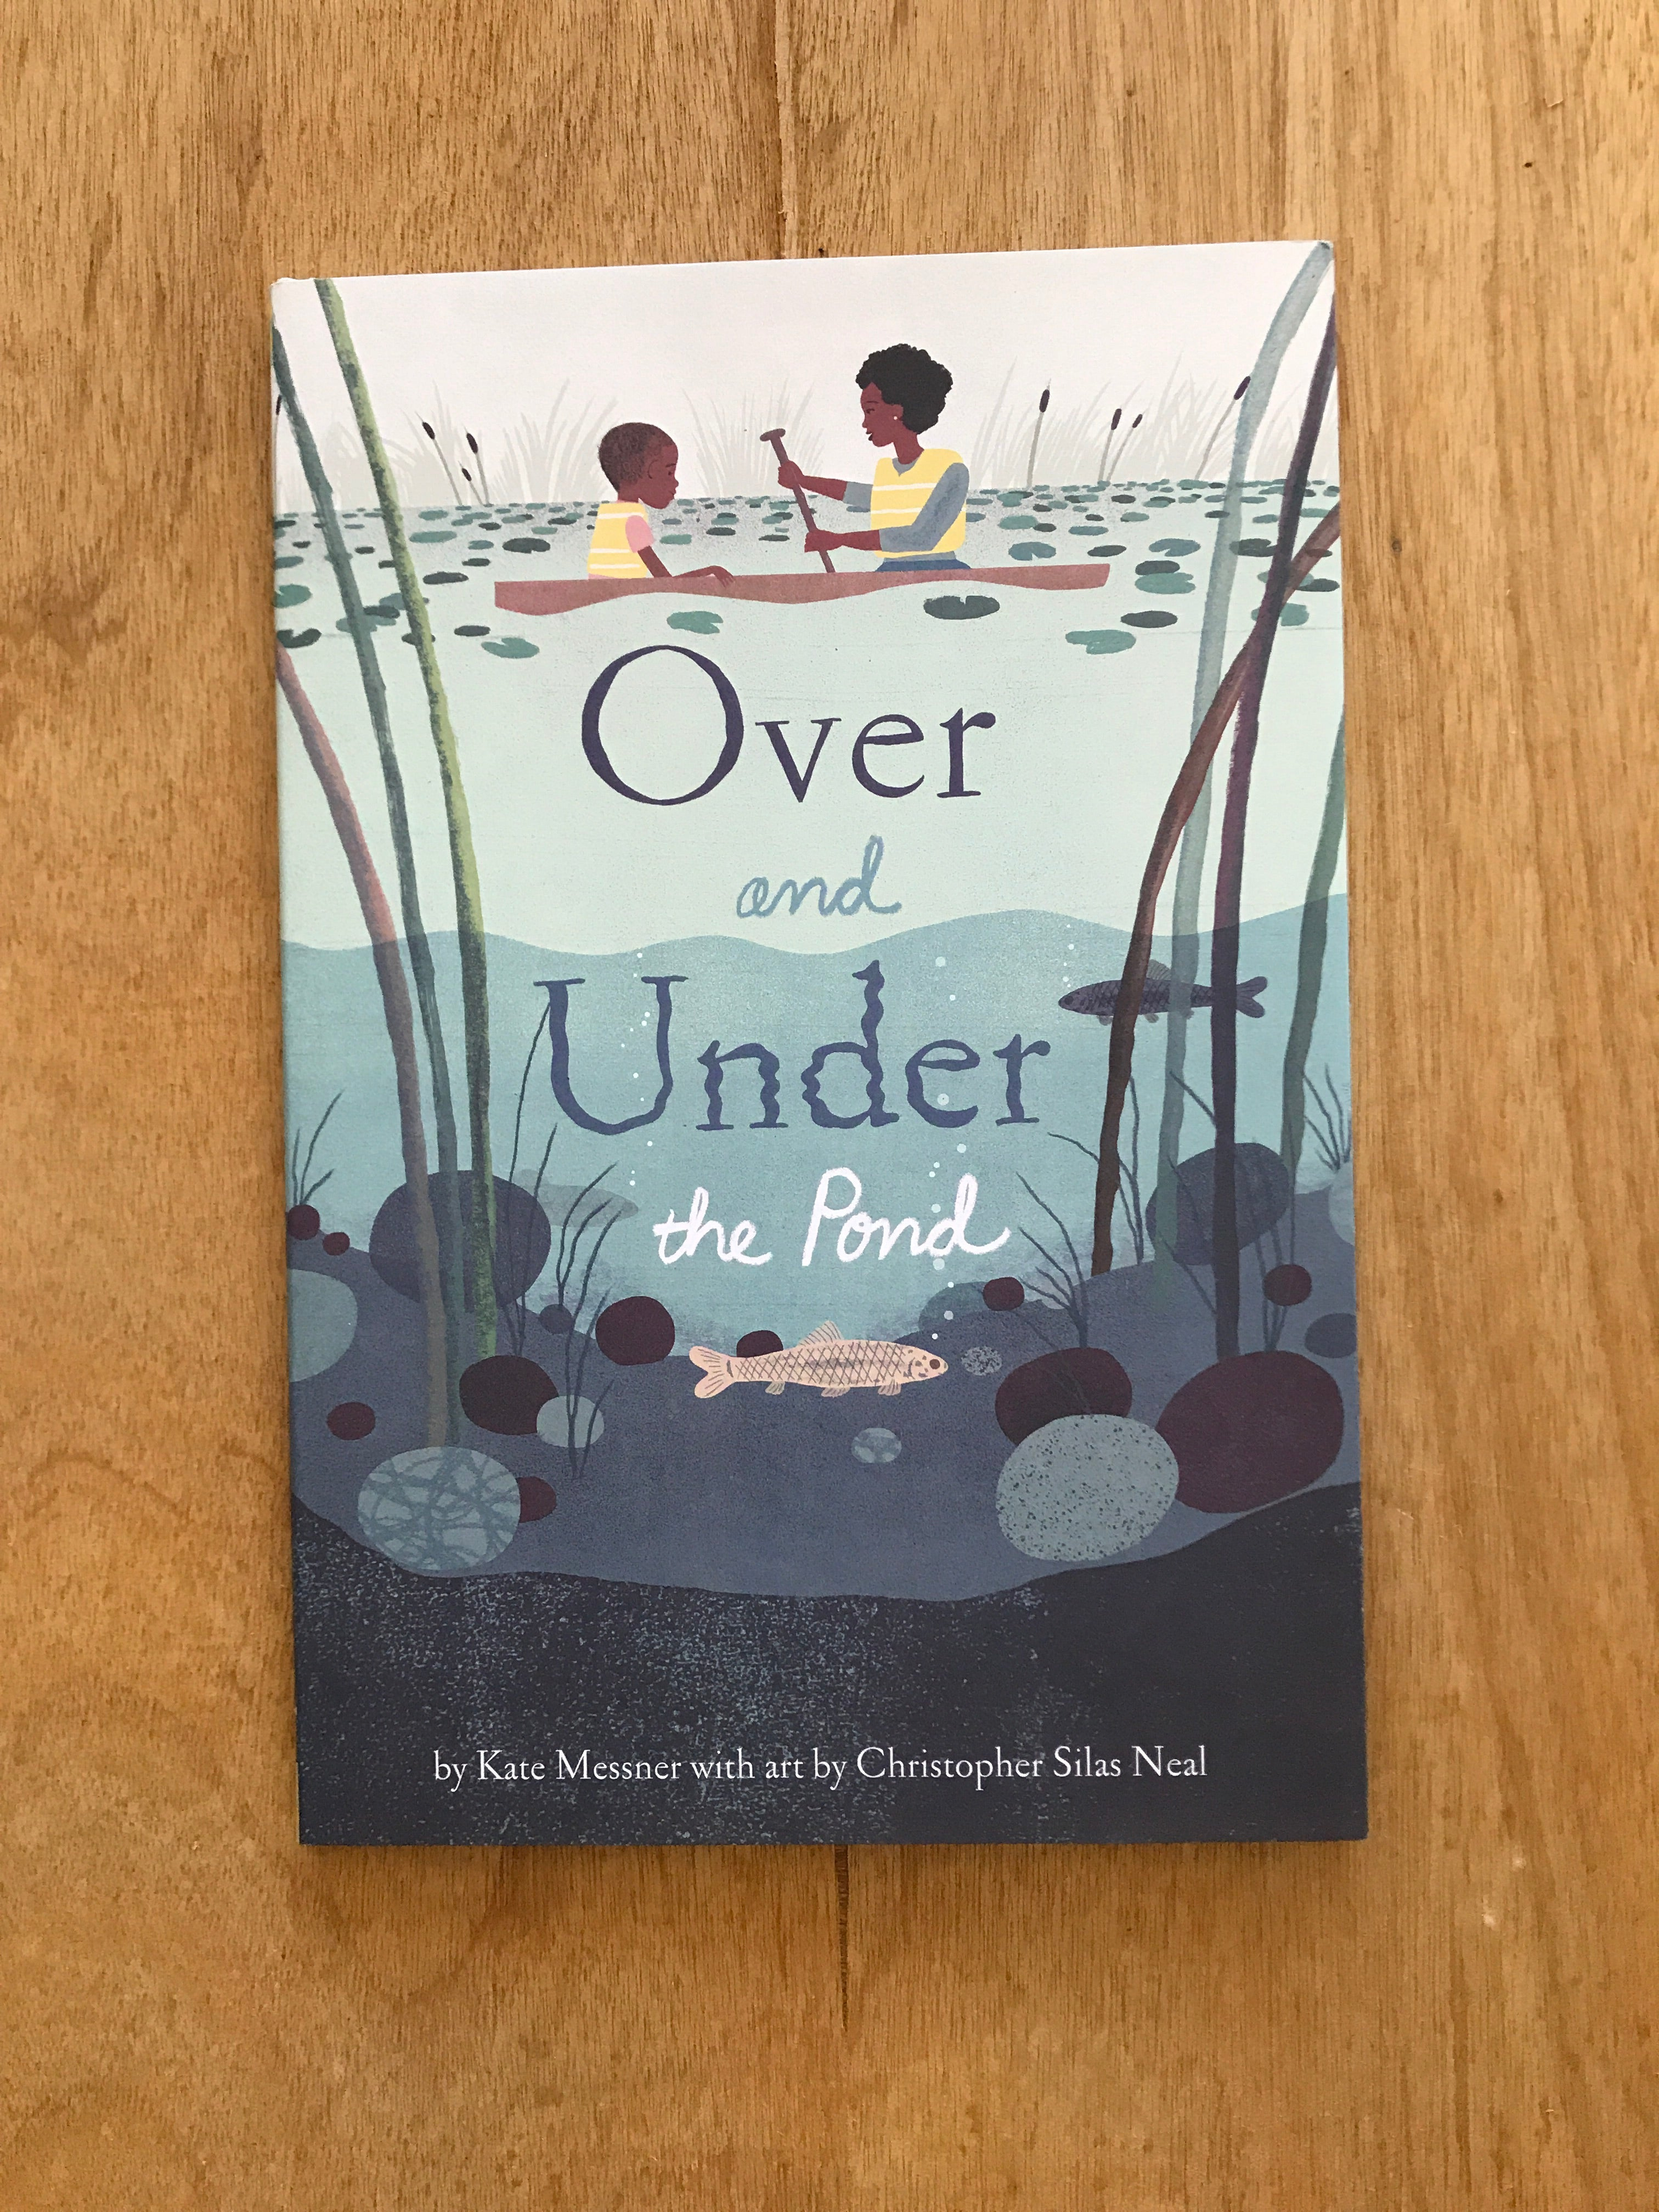 Over and Under the Pond by Christopher Silas Neal